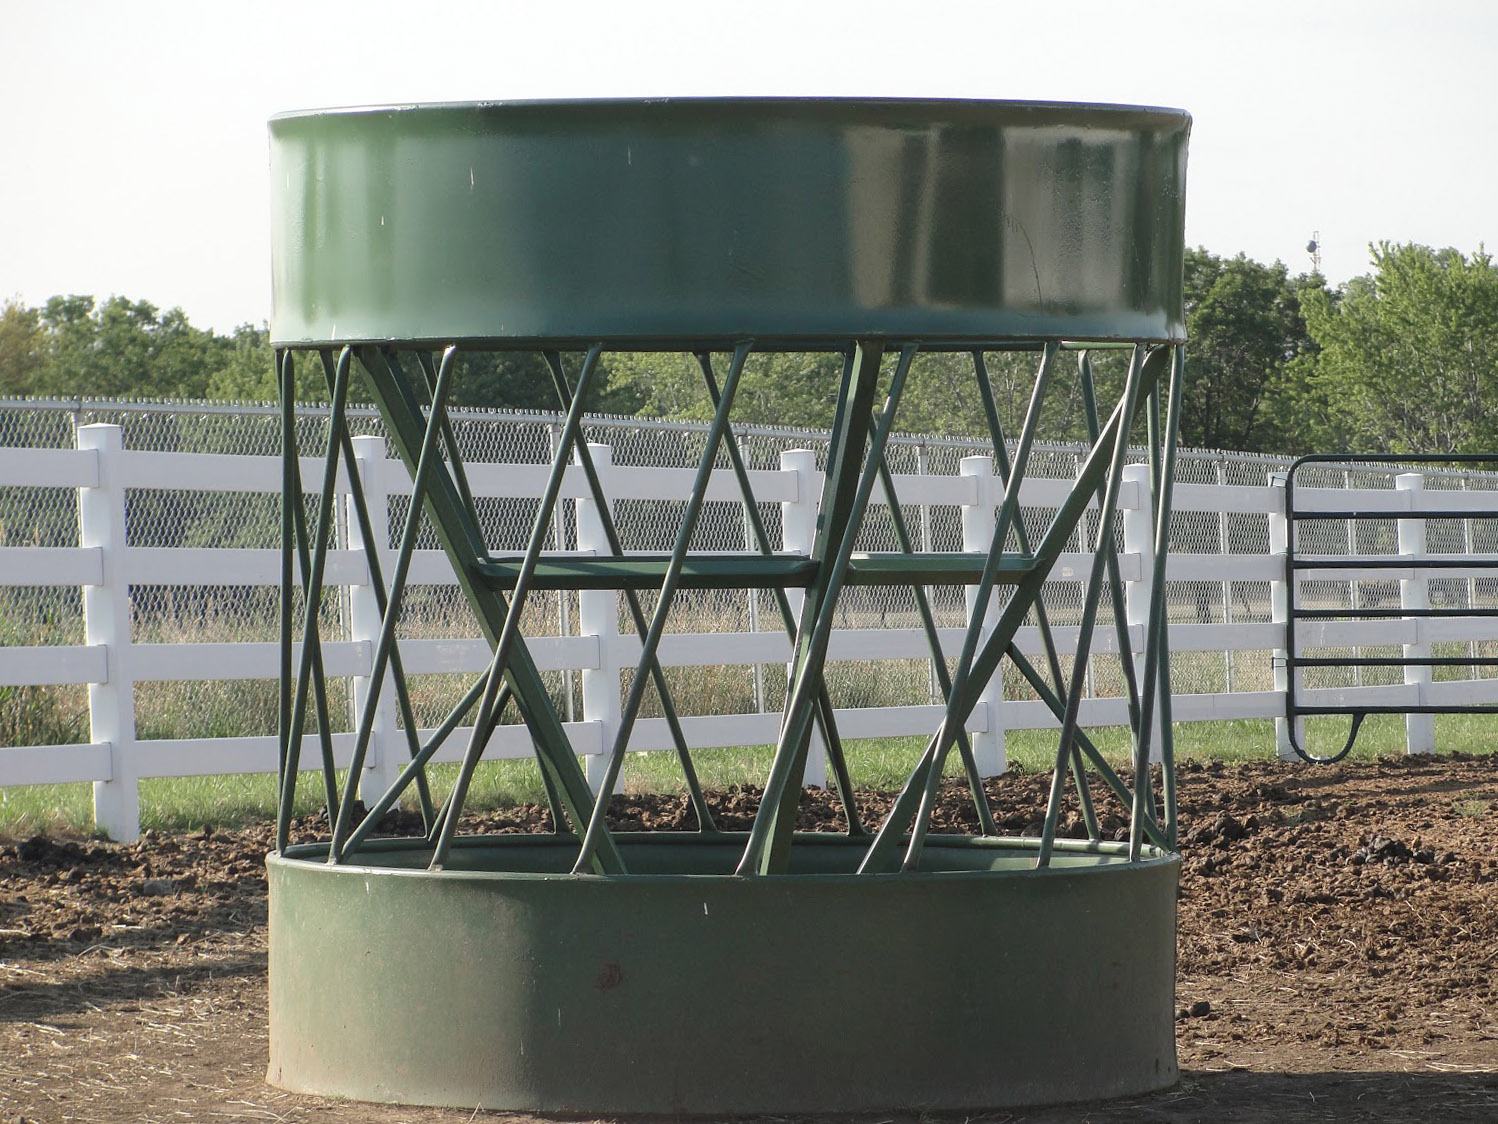 Feeding horses with a round-bale feeder | UMN Extension